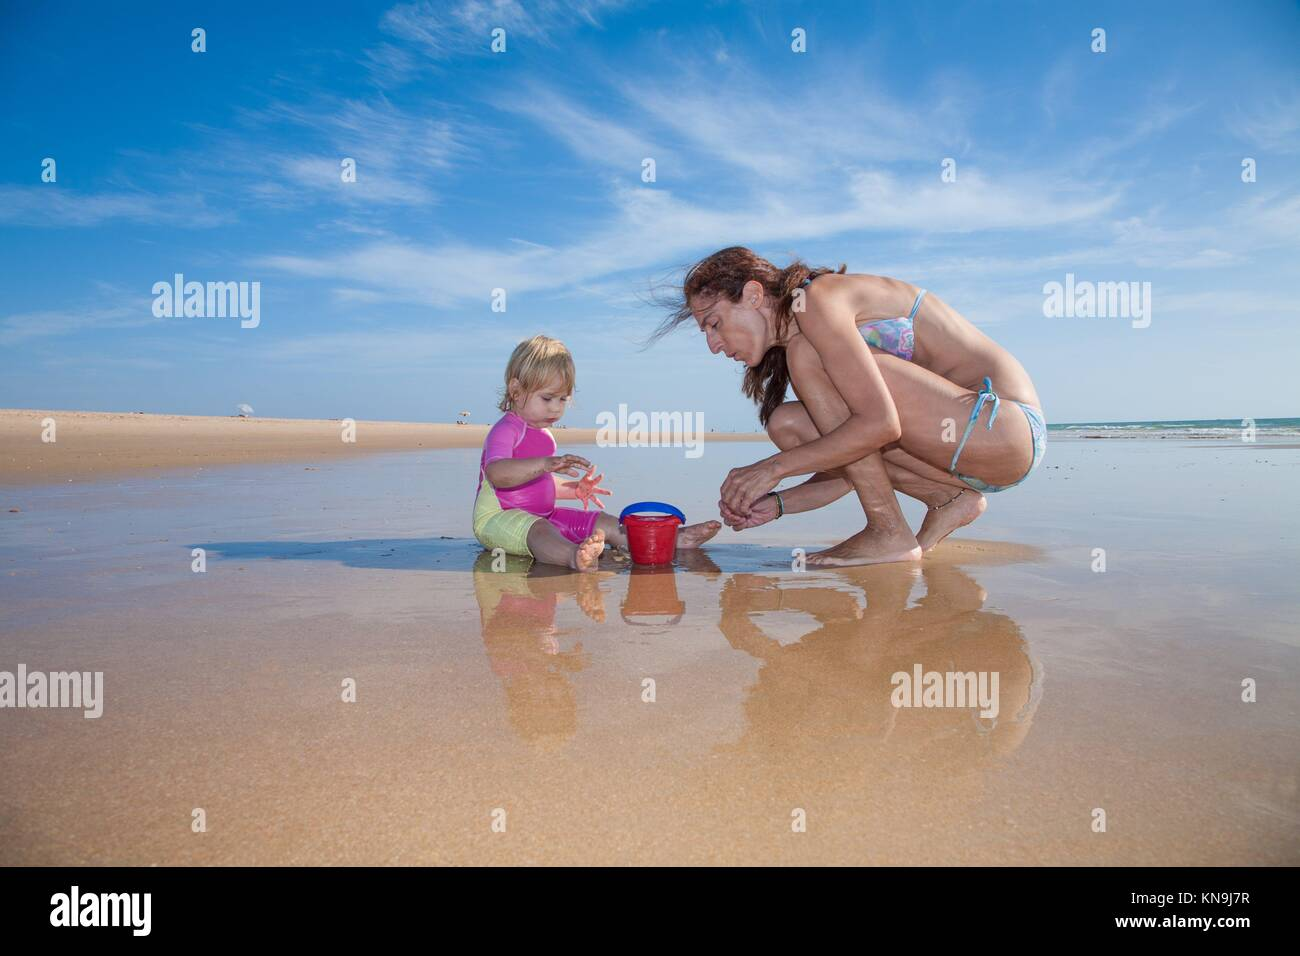 summer family of two years blonde baby pink and yellow swimsuit sitting on water with brunette woman mother in bikini - Stock Image